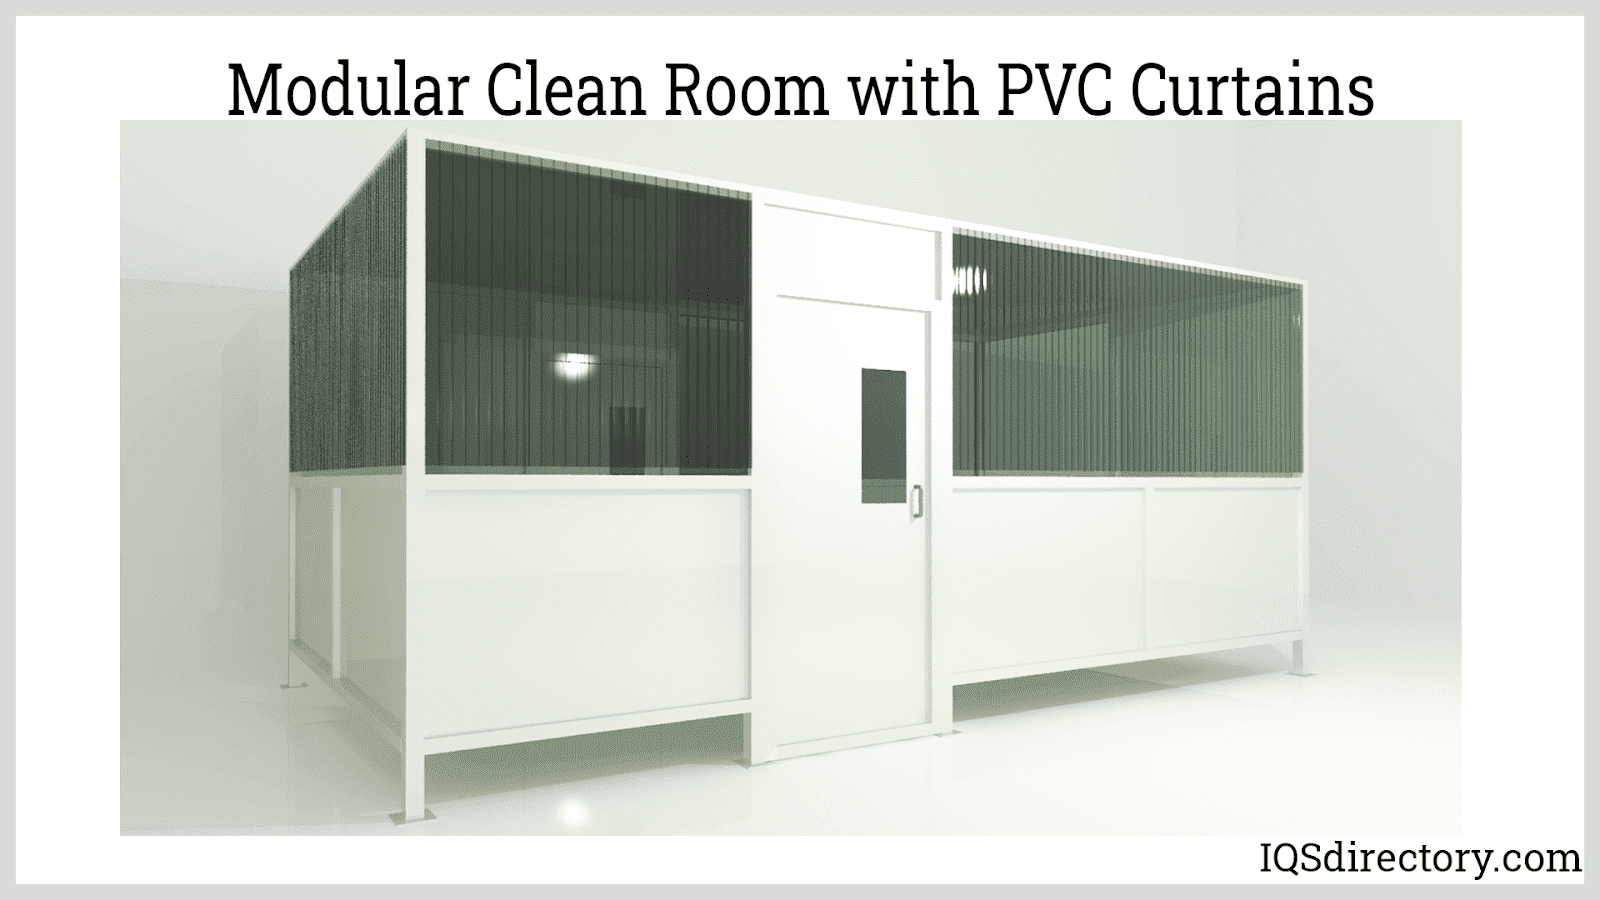 Modular Clean Room with PVC Curtains